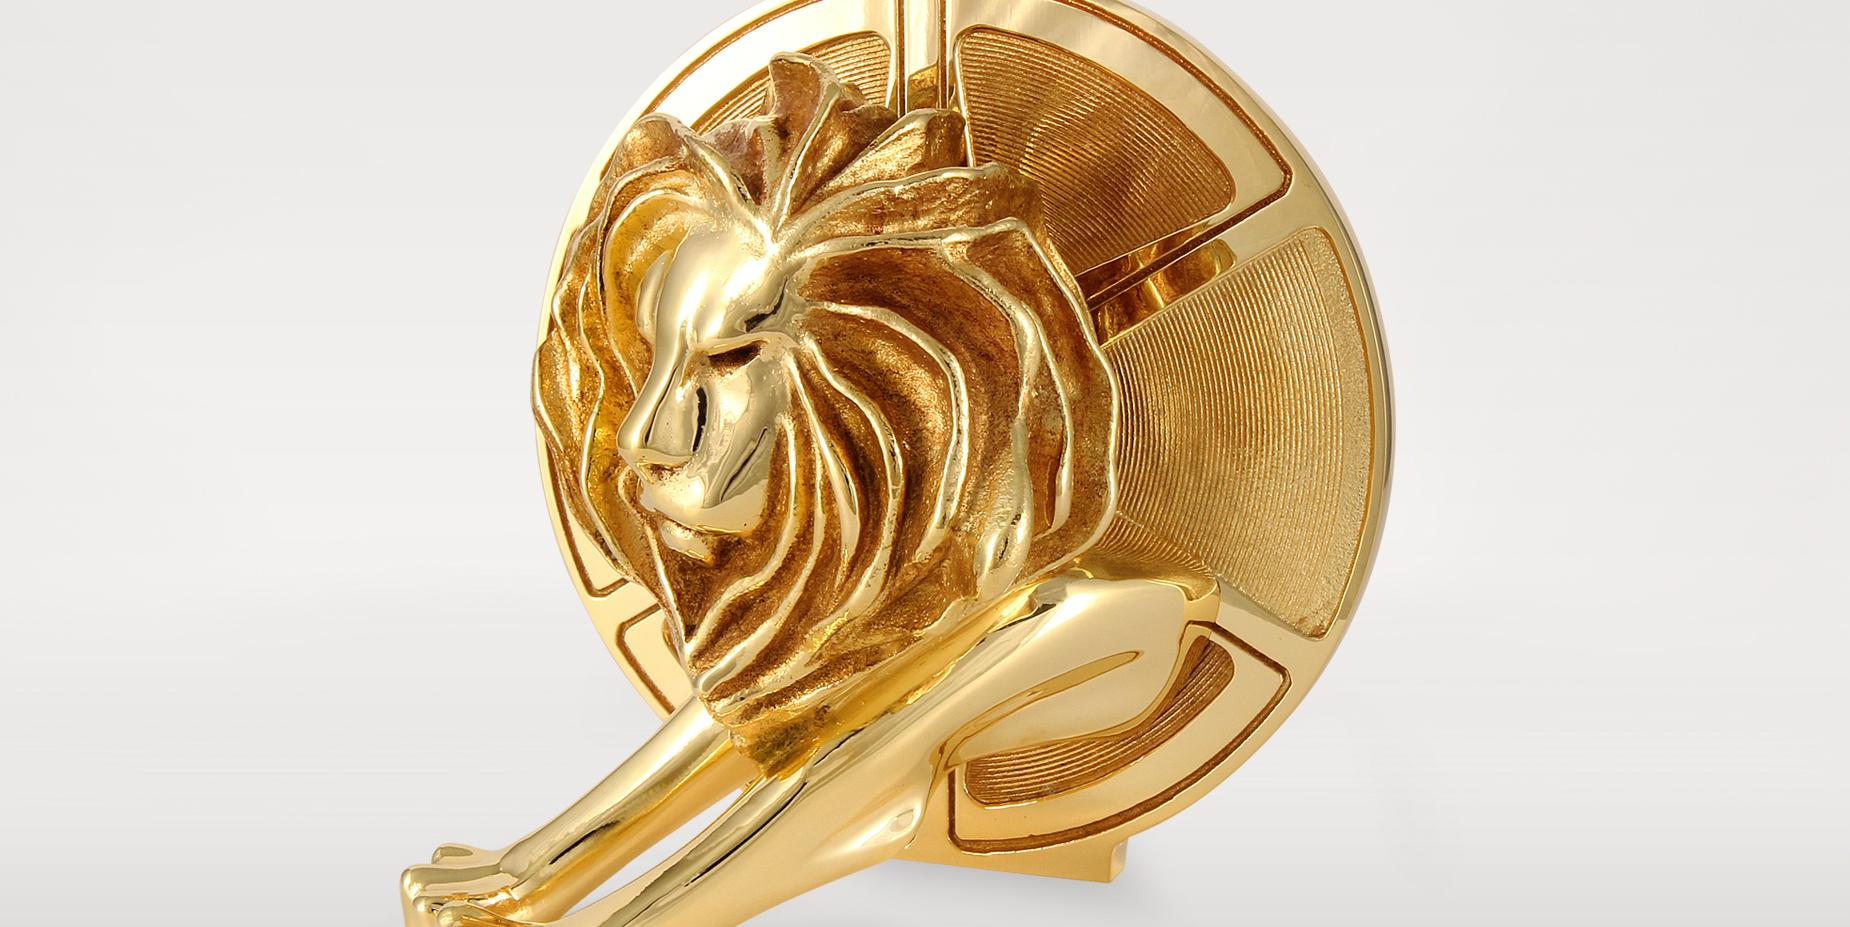 """Cannes adds """"Glass Lion: The Lion of Change"""" award for advertising addressing gender issues http://t.co/Lln6RySxJD http://t.co/qC0w2fKHko"""